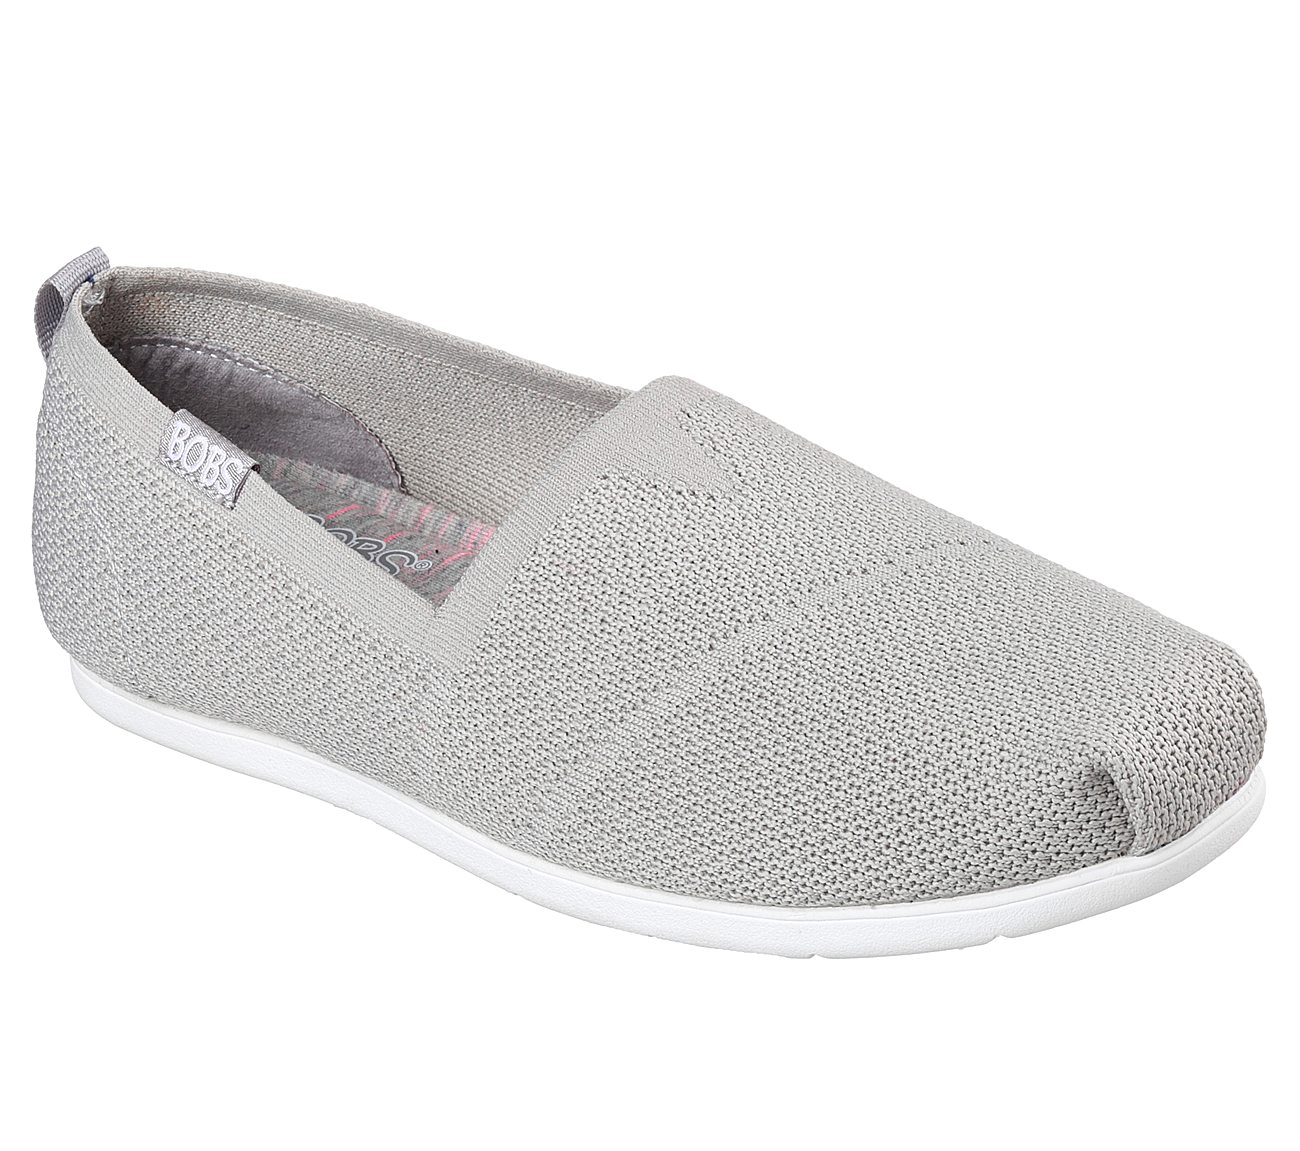 dc2f3f547b8a Buy SKECHERS BOBS Plush Lite - Custom Built BOBS Shoes only  65.00